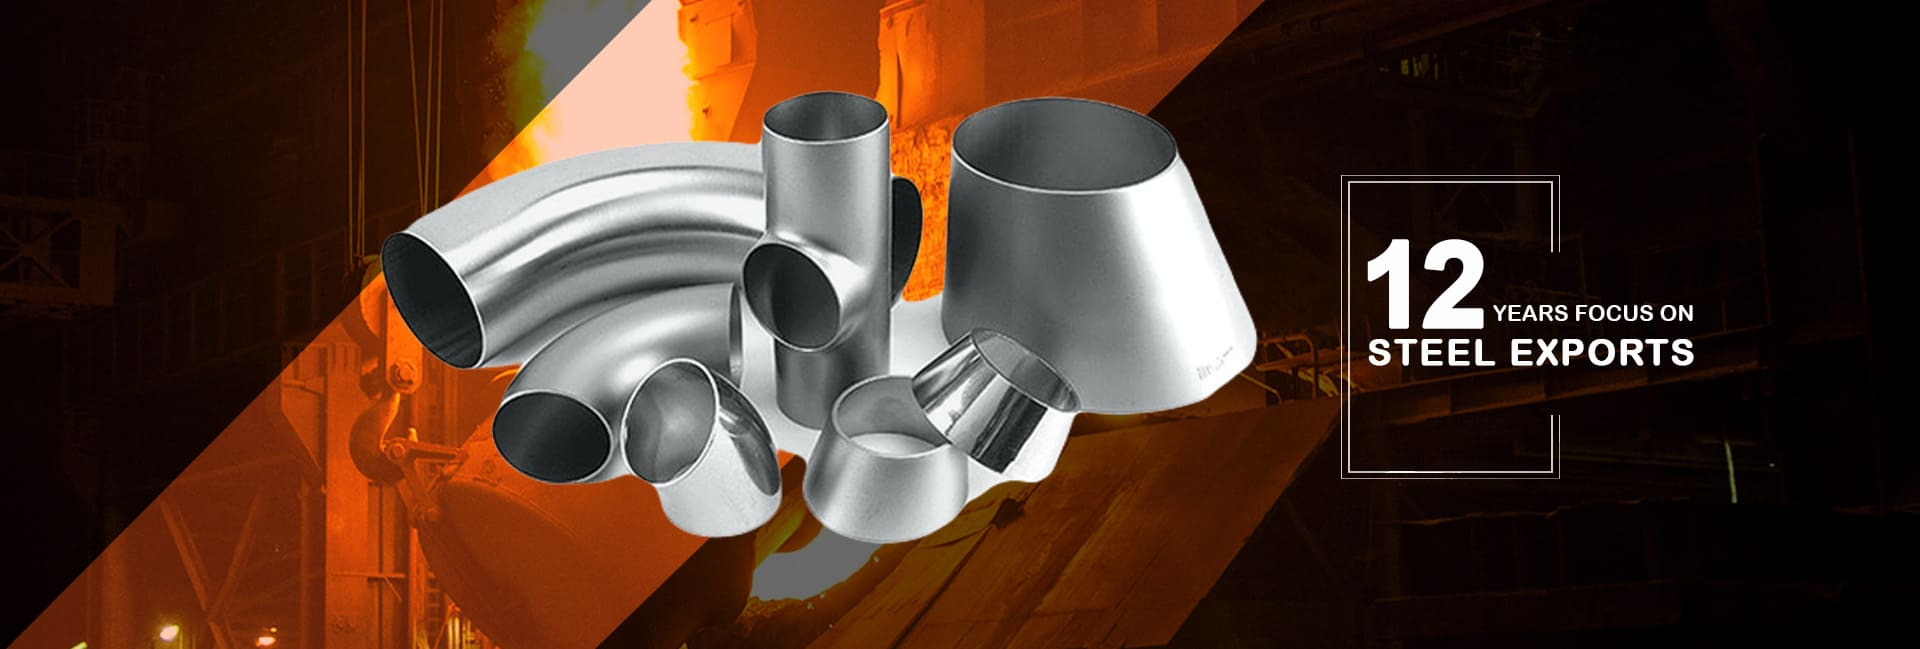 Stainless Steel 304 / 304L Buttweld Pipe Fittings